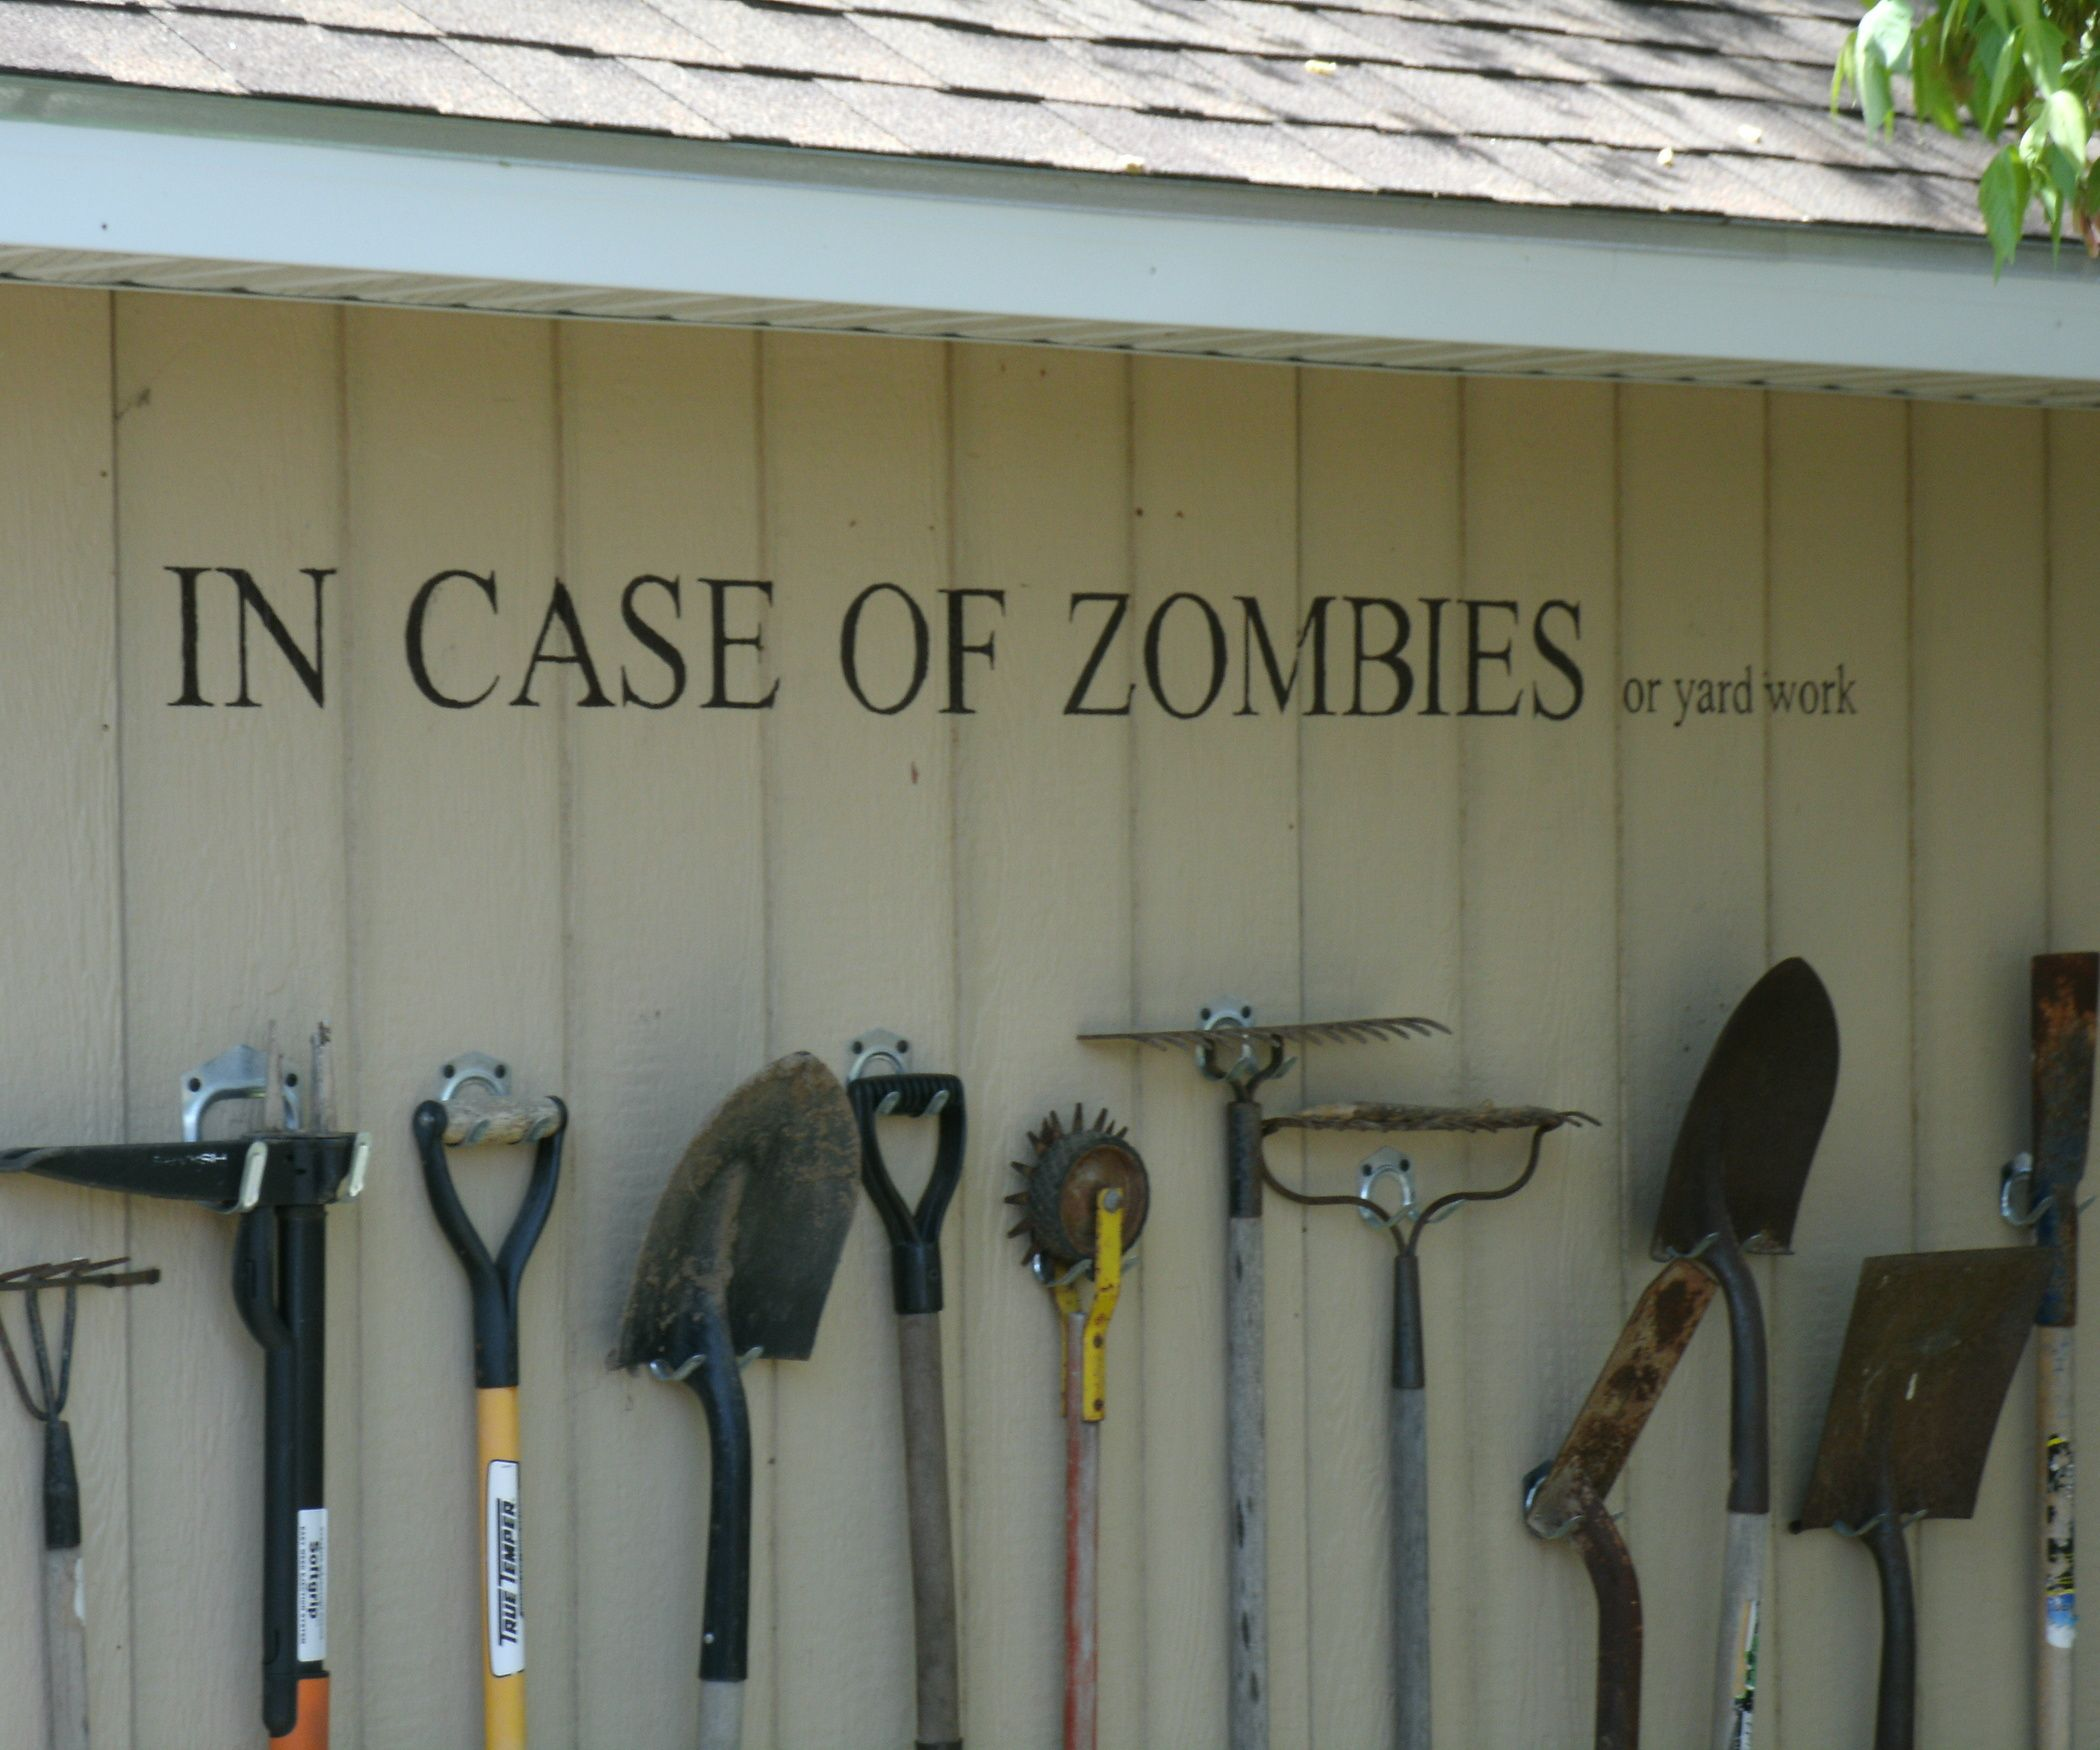 Storing garden tools with style aka zombiewall gardens for Garden tool maintenance